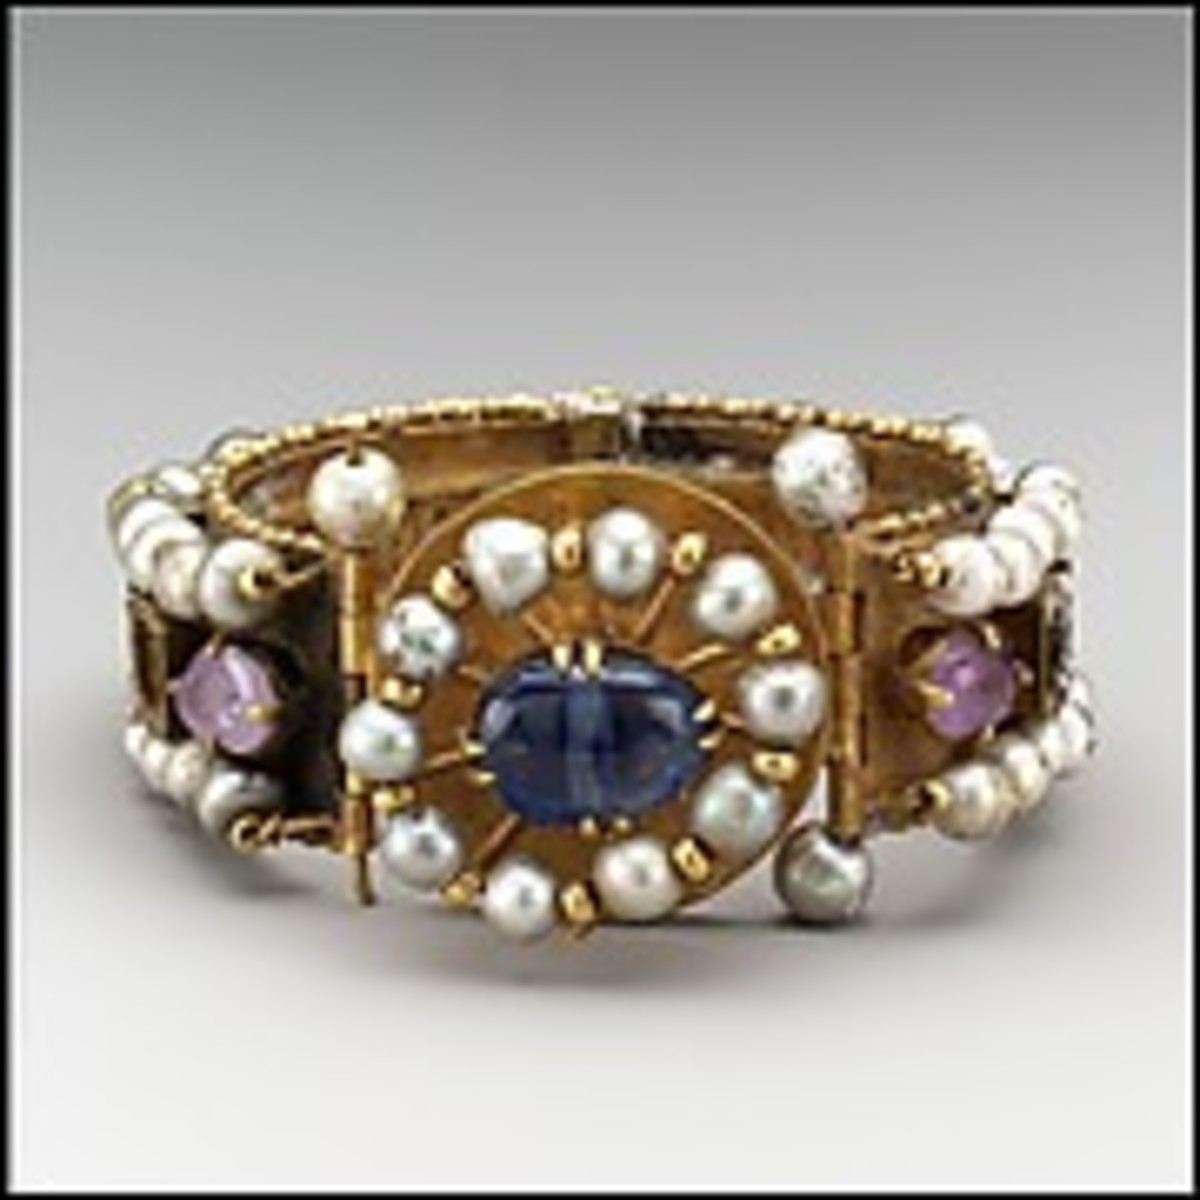 Date:between 500 and 700 Medium:Gold, silver, pearls, amethyst, sapphire, glass, quartz Location:The Met Fifth Avenue in Gallery 302